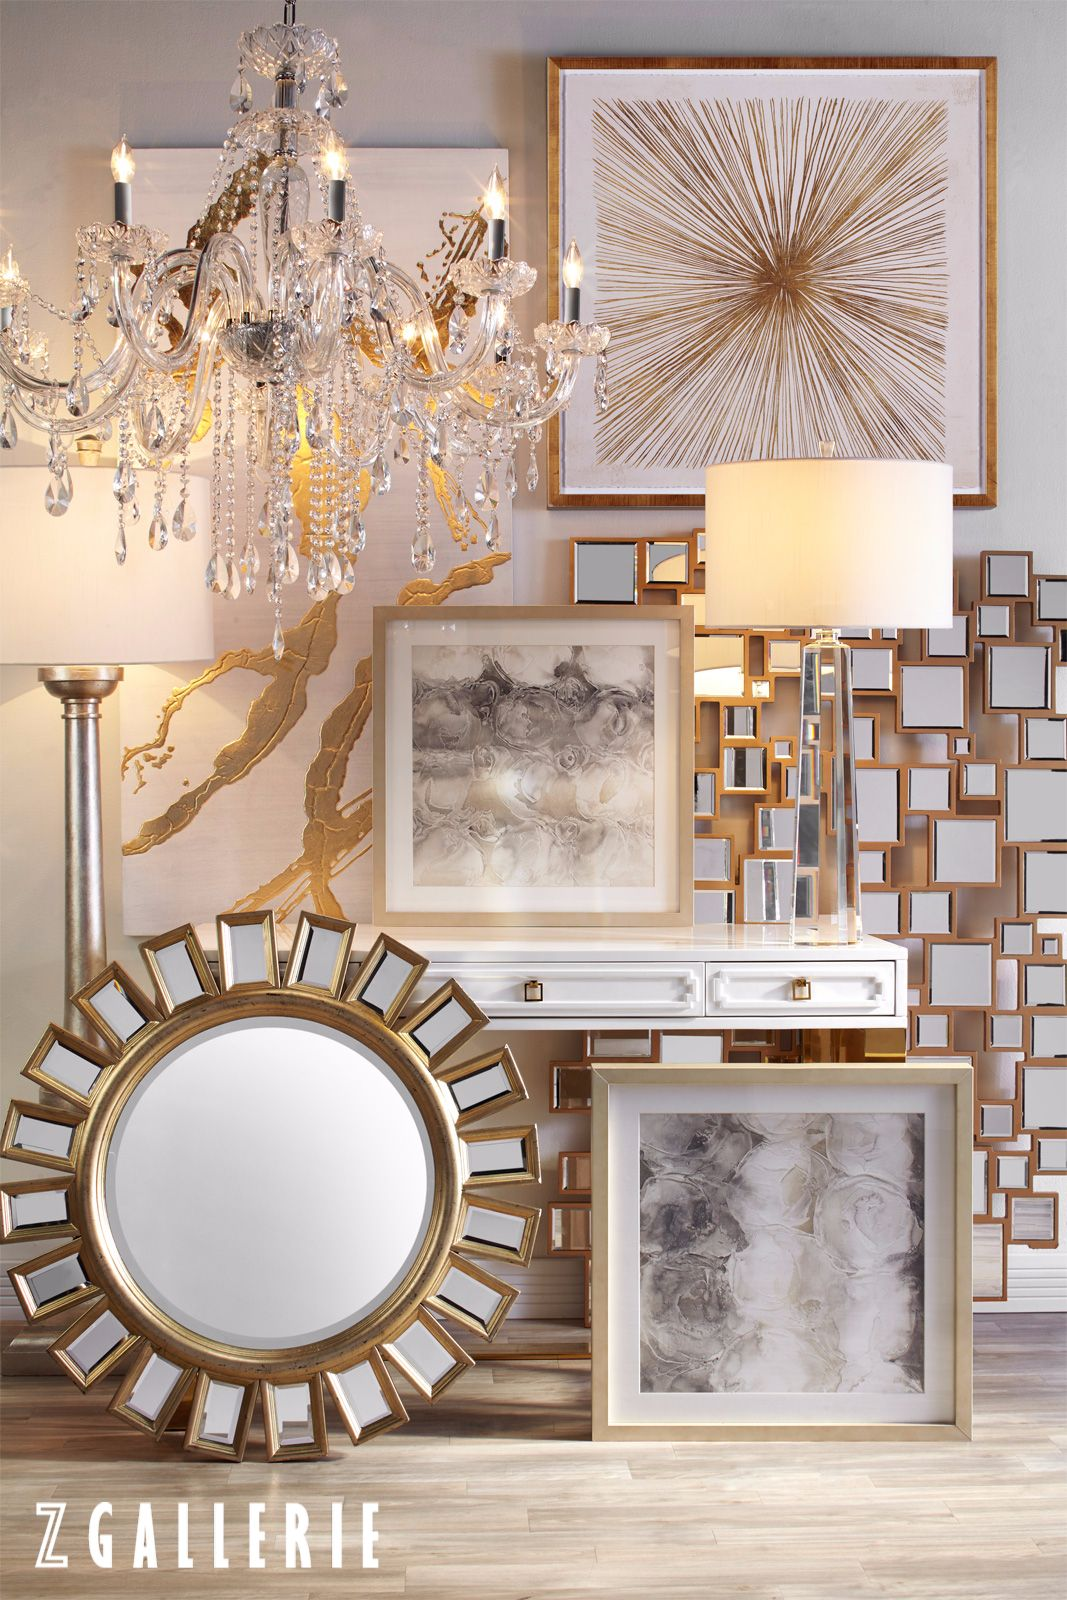 Curate your style with our latest art, lighting, and